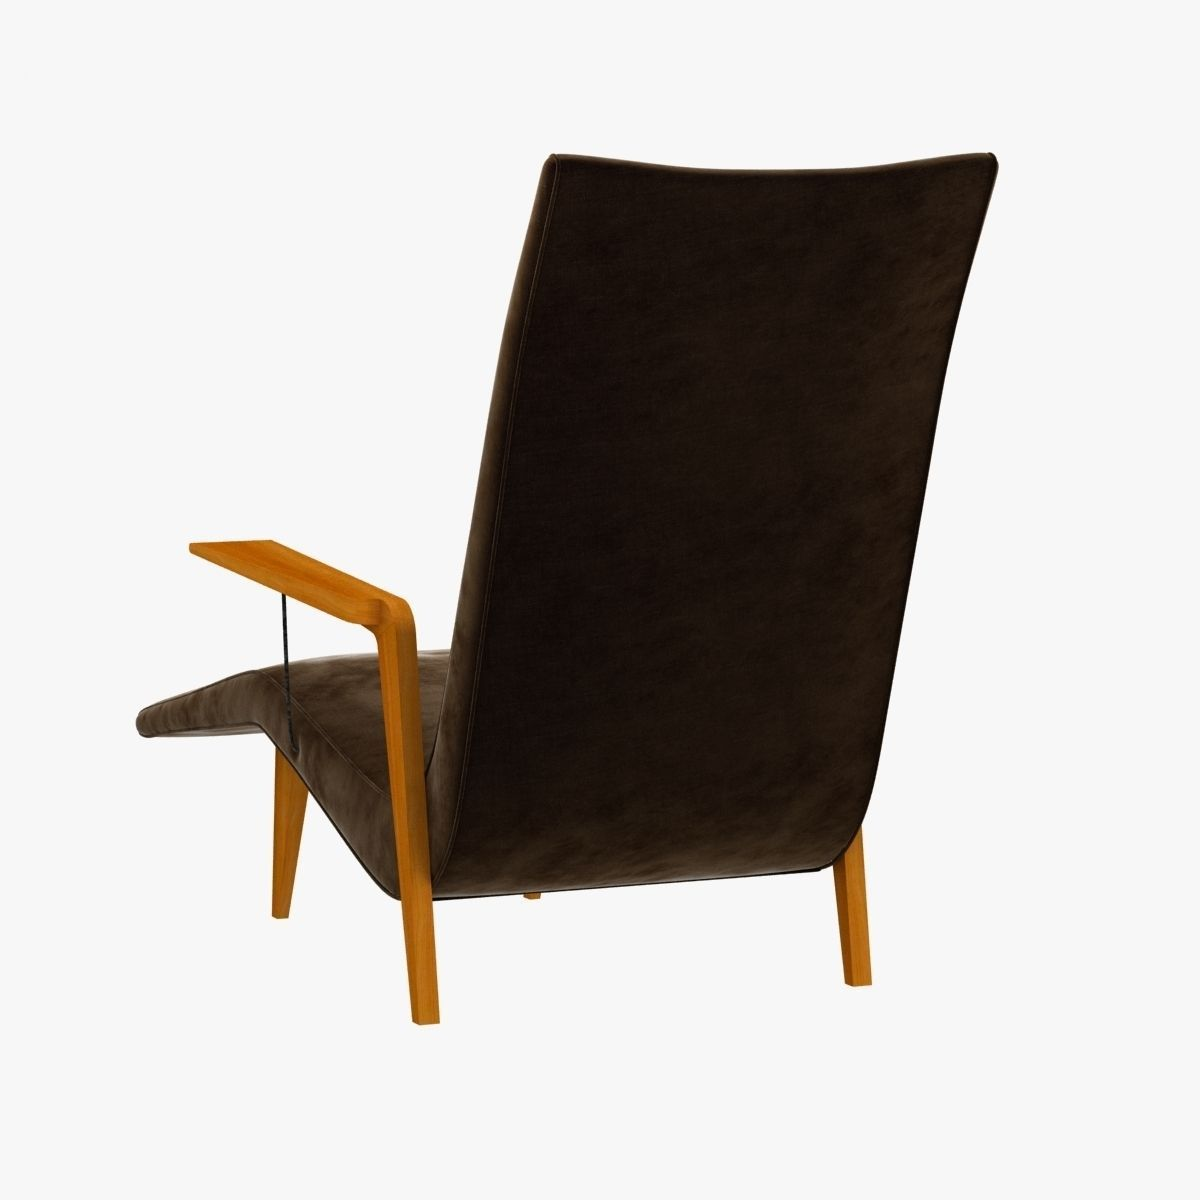 Chaise lounge by joaquin tenreiro 3d model max obj 3ds fbx for Chaise modele